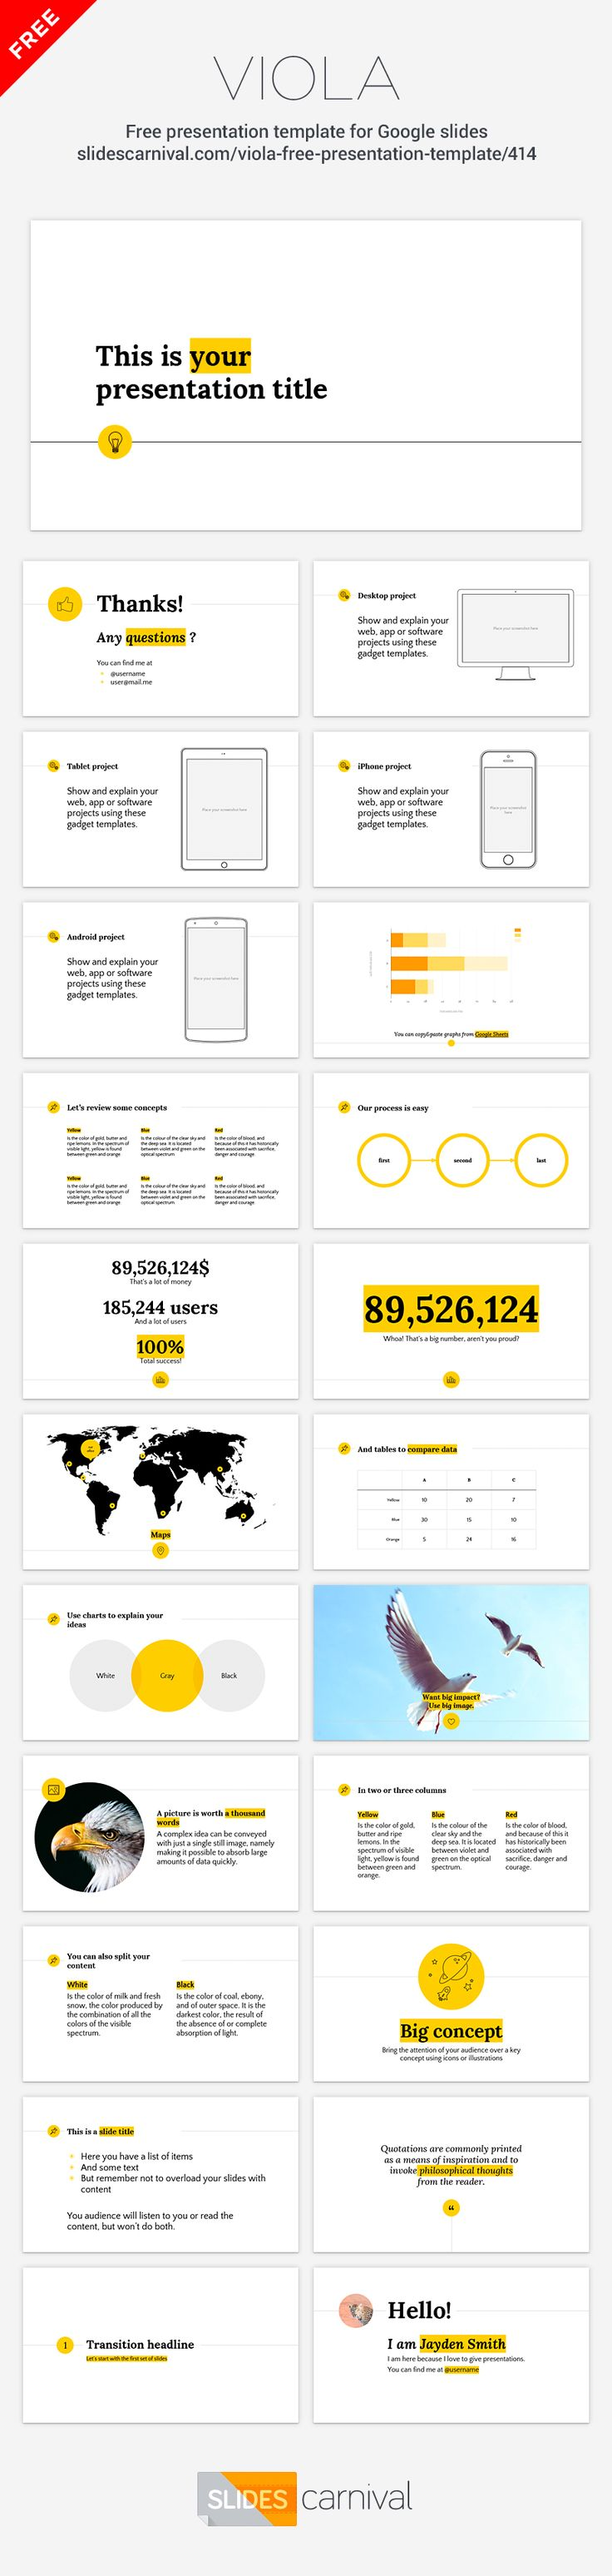 best ideas about presentation templates a style suitable for any theme and content this presentation template adapts easily to any brand by changing one single color